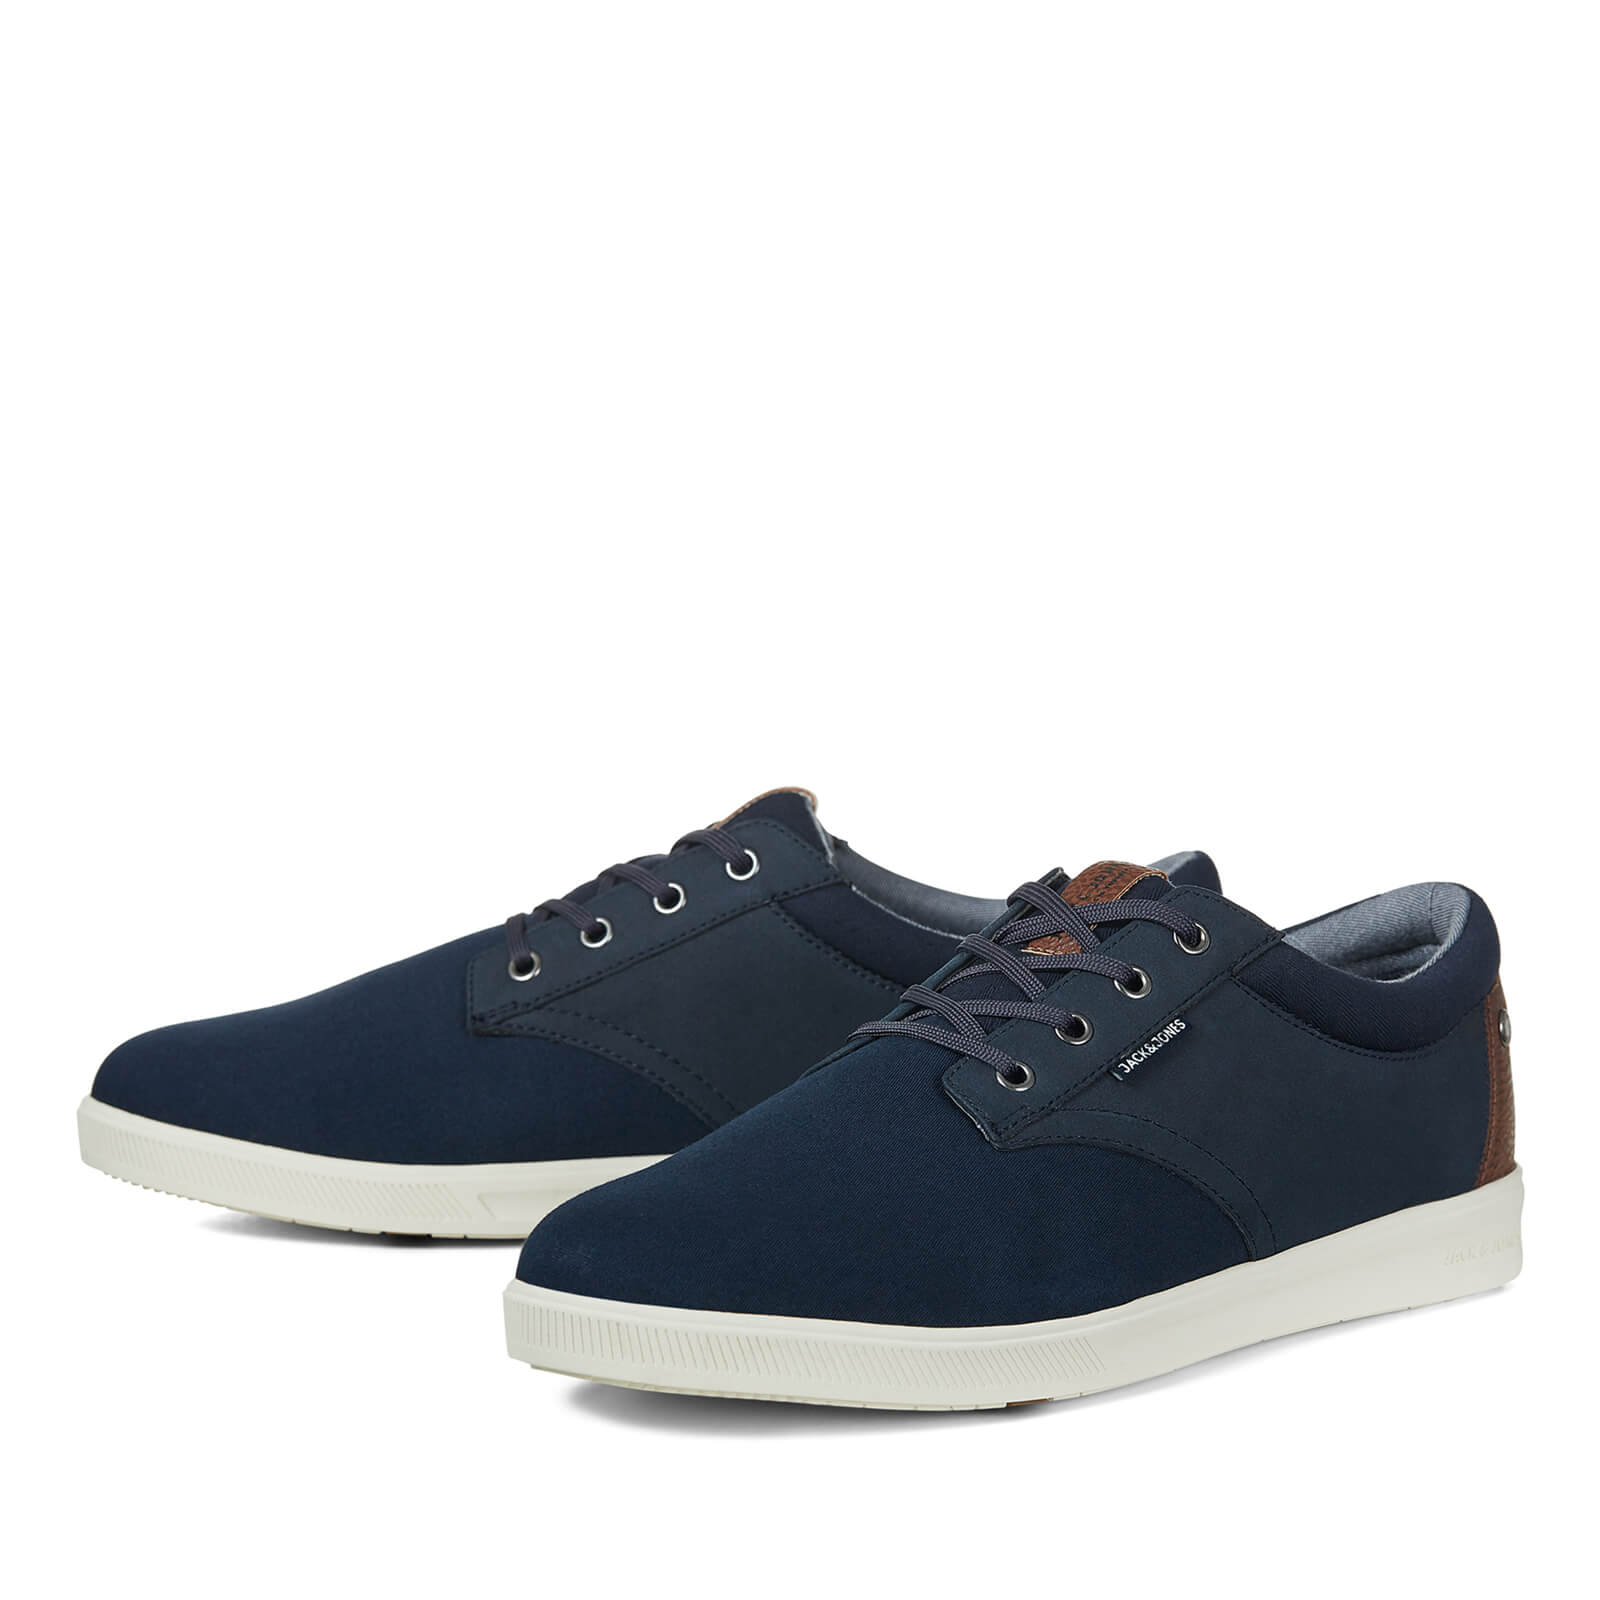 Baskets Homme Gaston Jack & Jones - Bleu Marine